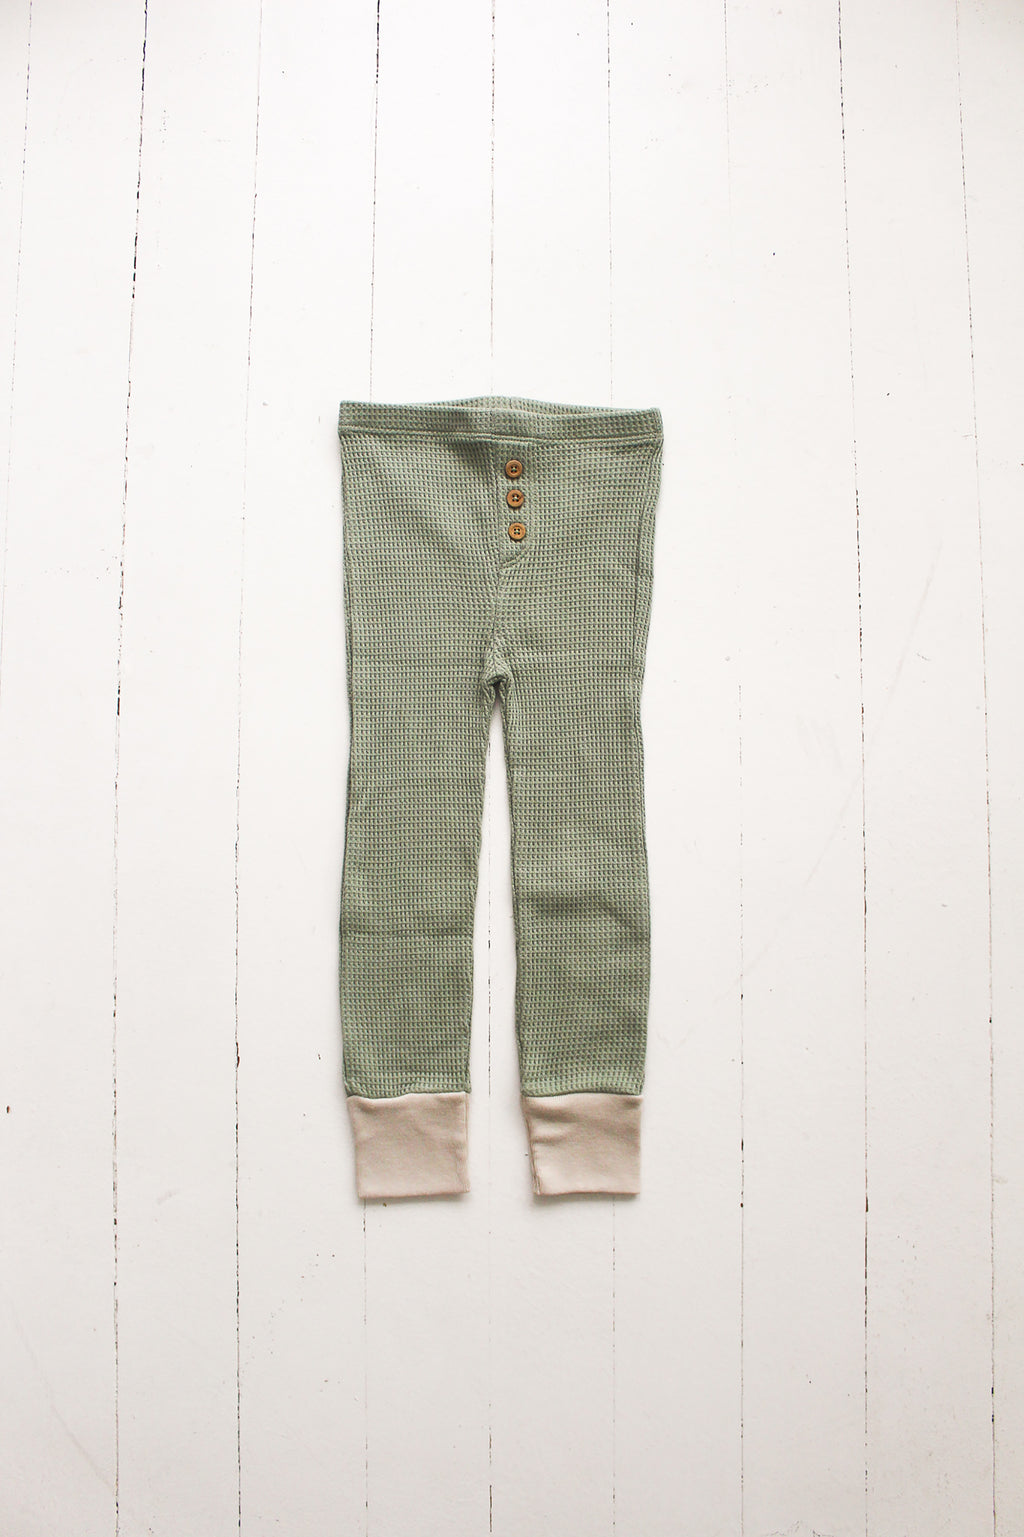 Fin and Vince - Button Pant (Waffle Sage)